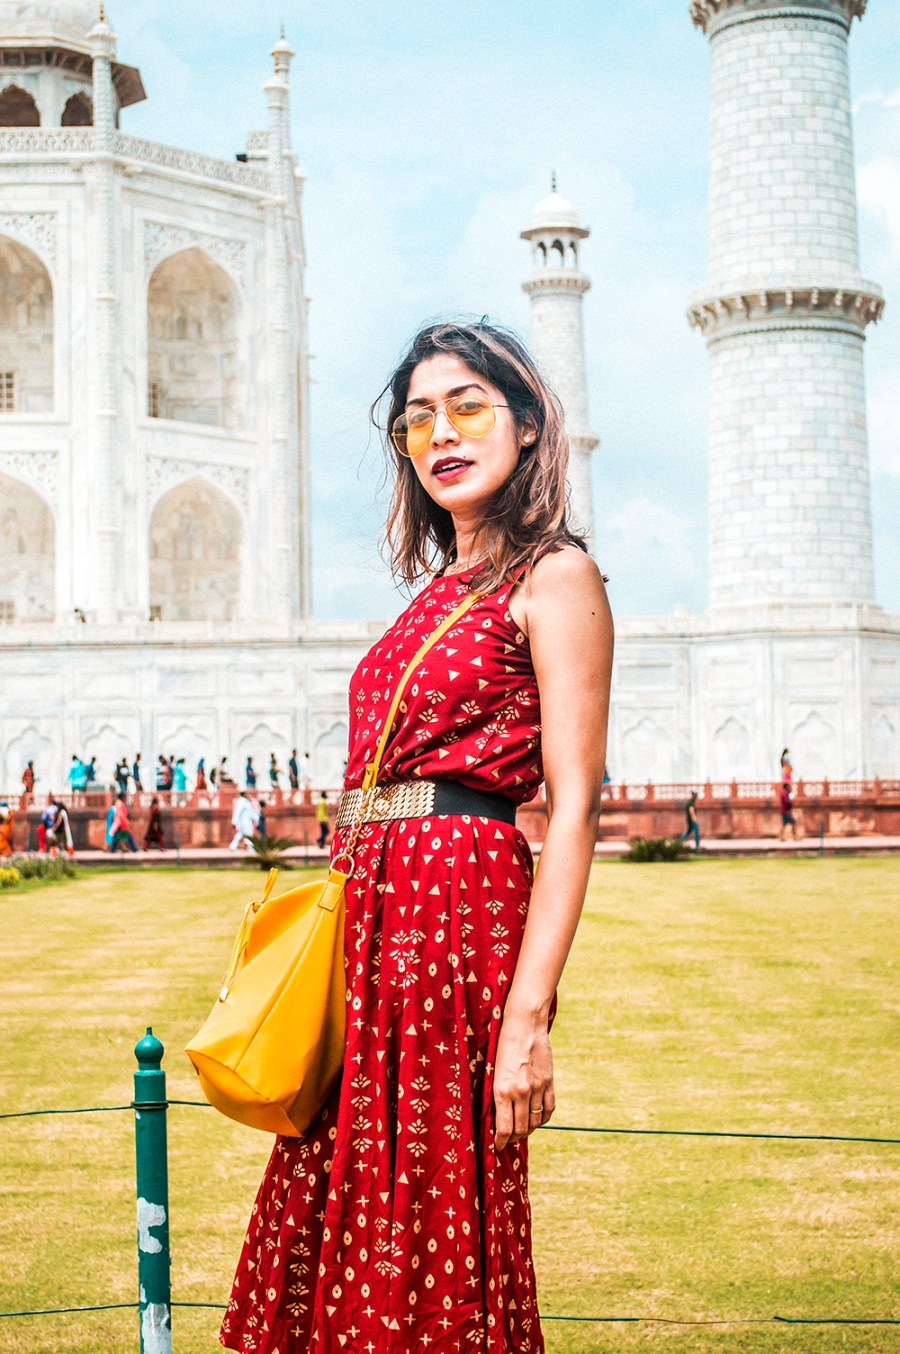 Style Over Coffee, Taj Mahal, Travel, India, Fashion Blogger, Influencer, Ethnic Dress, Sarmistha Goswami, Indian Blogger, Maroon Dress-2